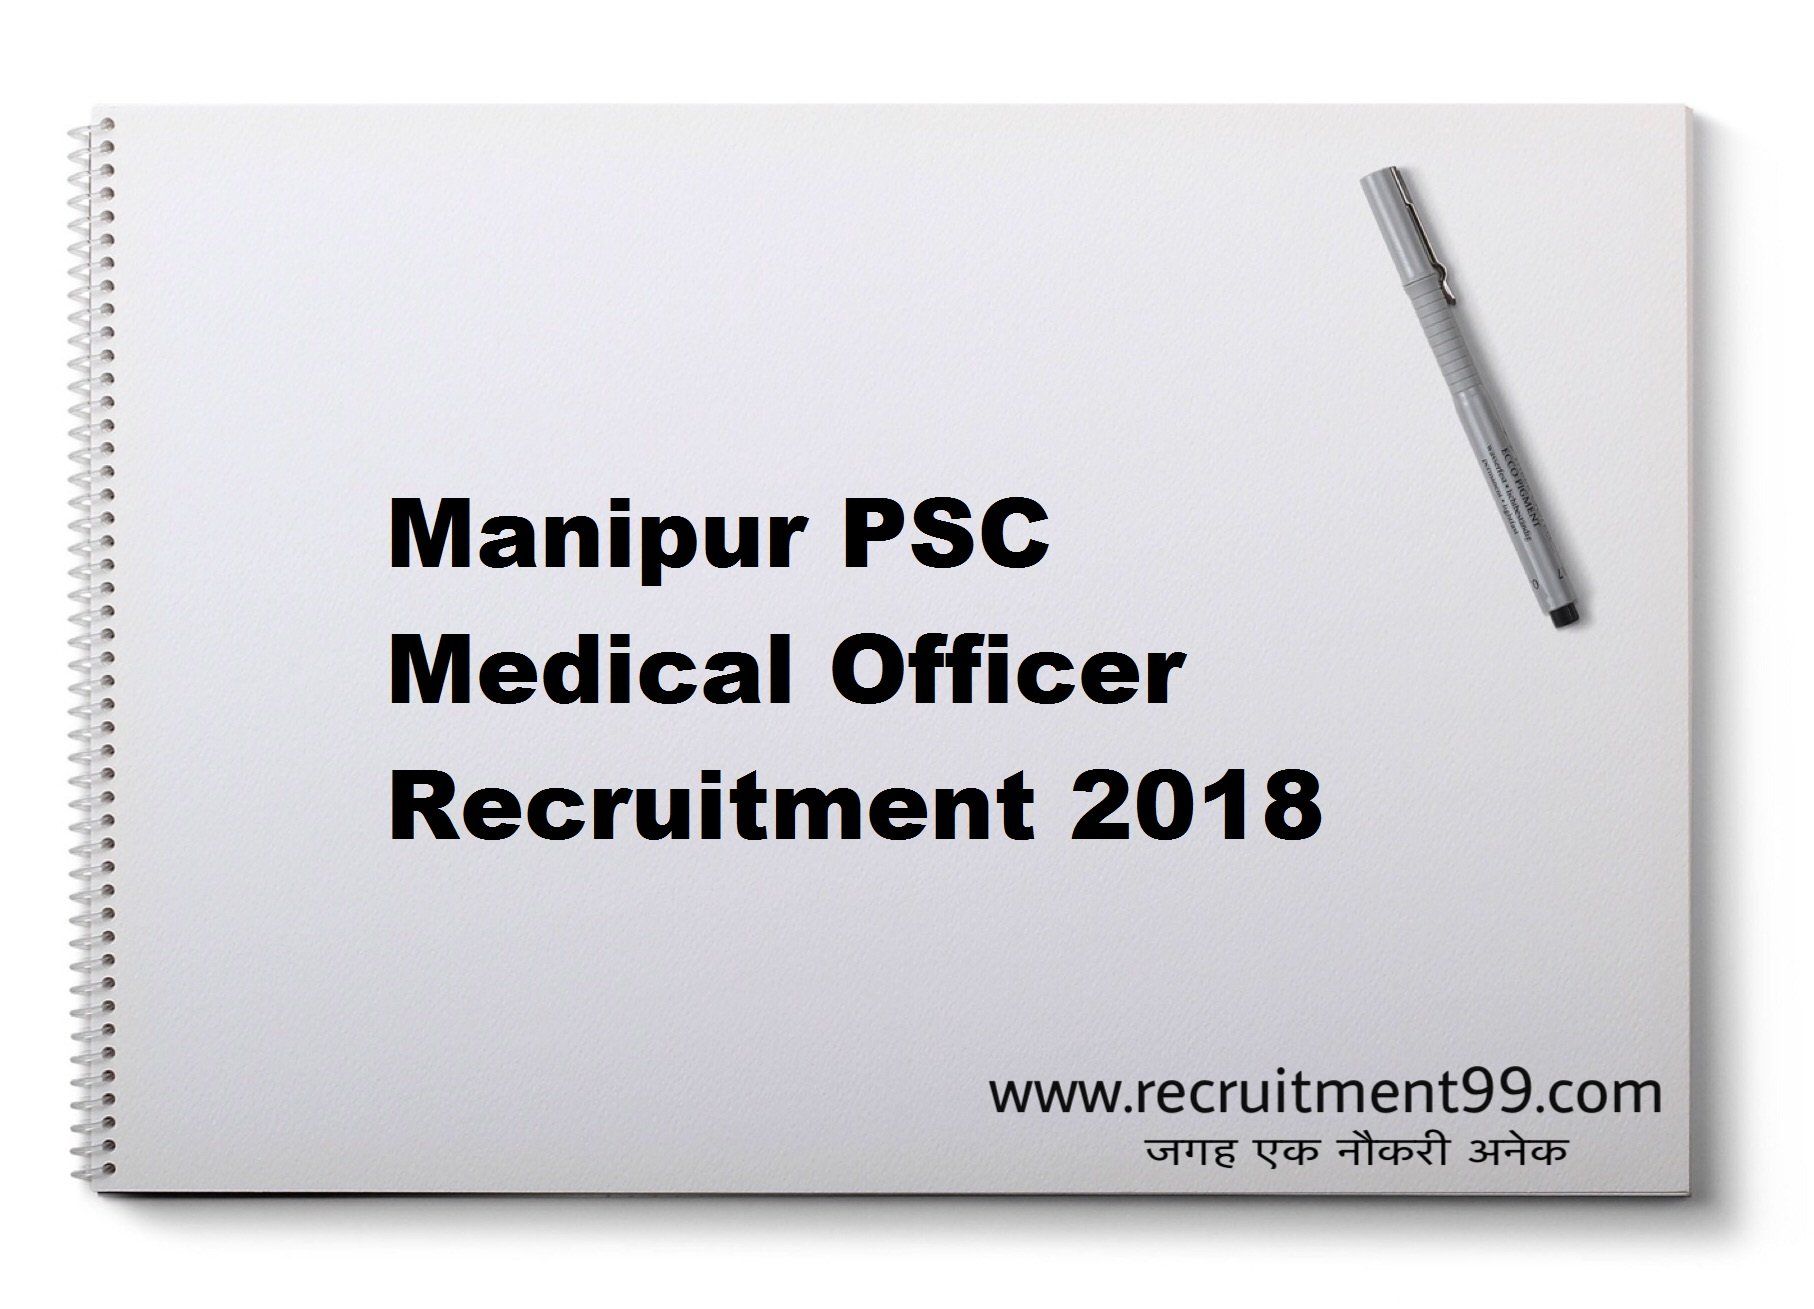 Manipur PSC Medical Officer Recruitment Admit Card Result 2018